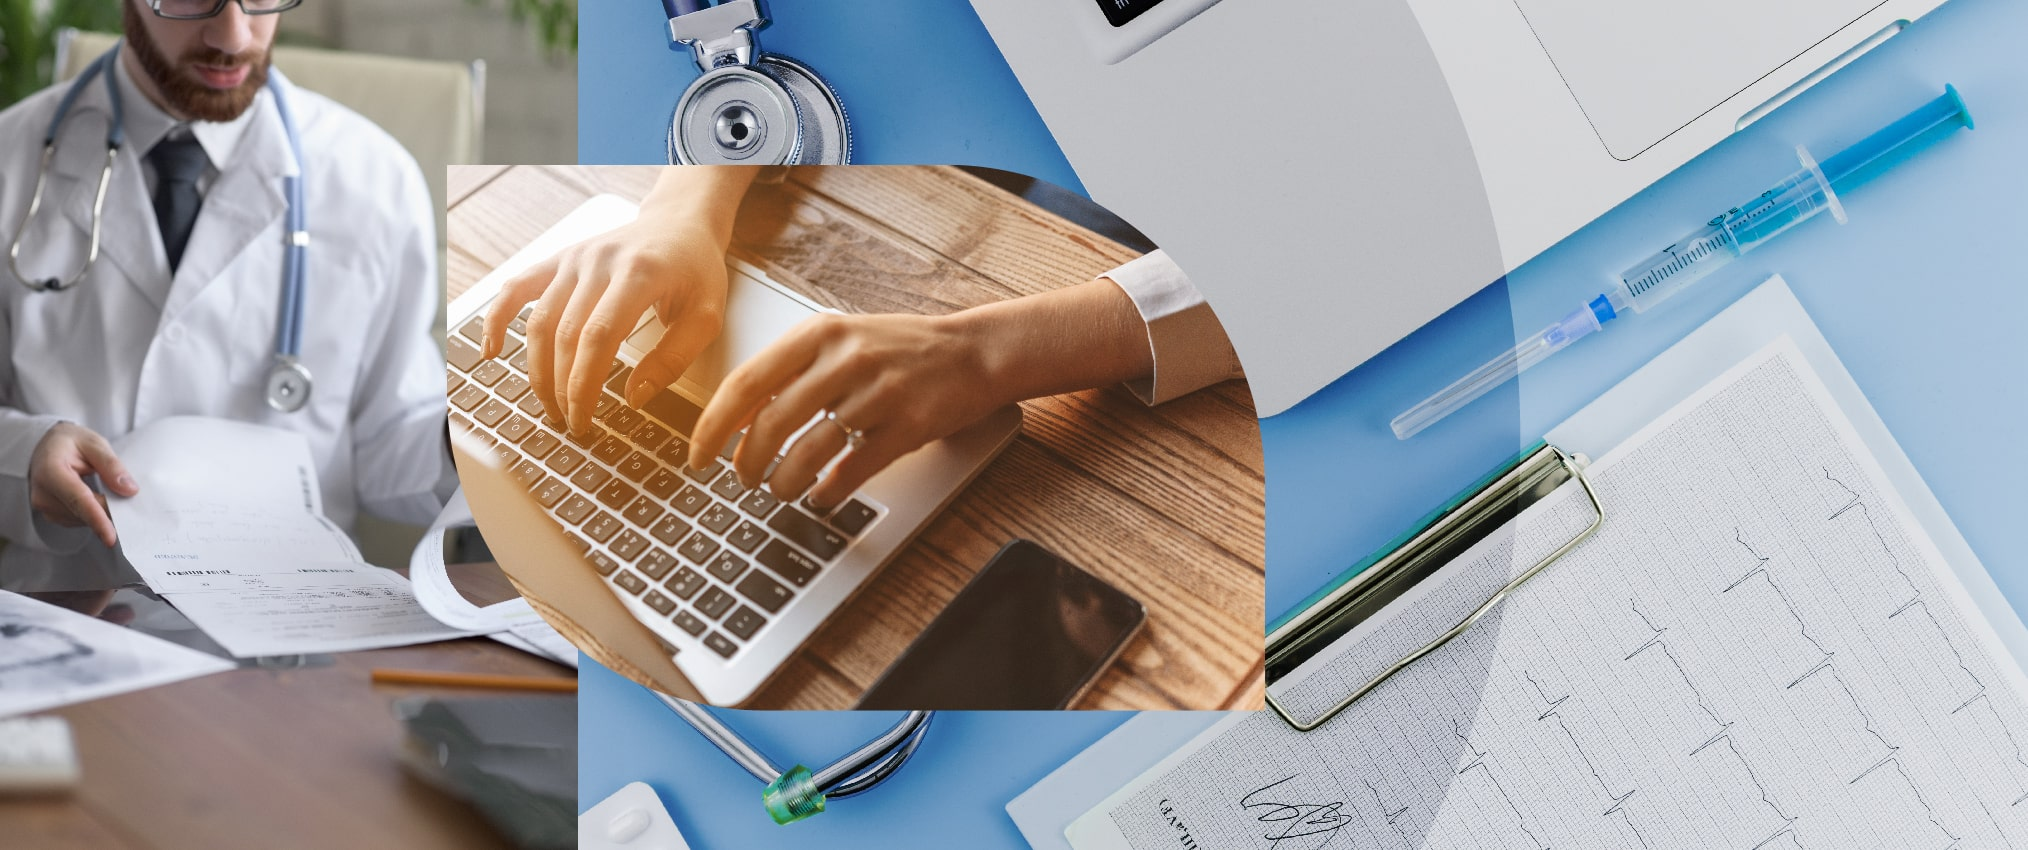 Importance of Outsourcing Medical Record Scanning Services